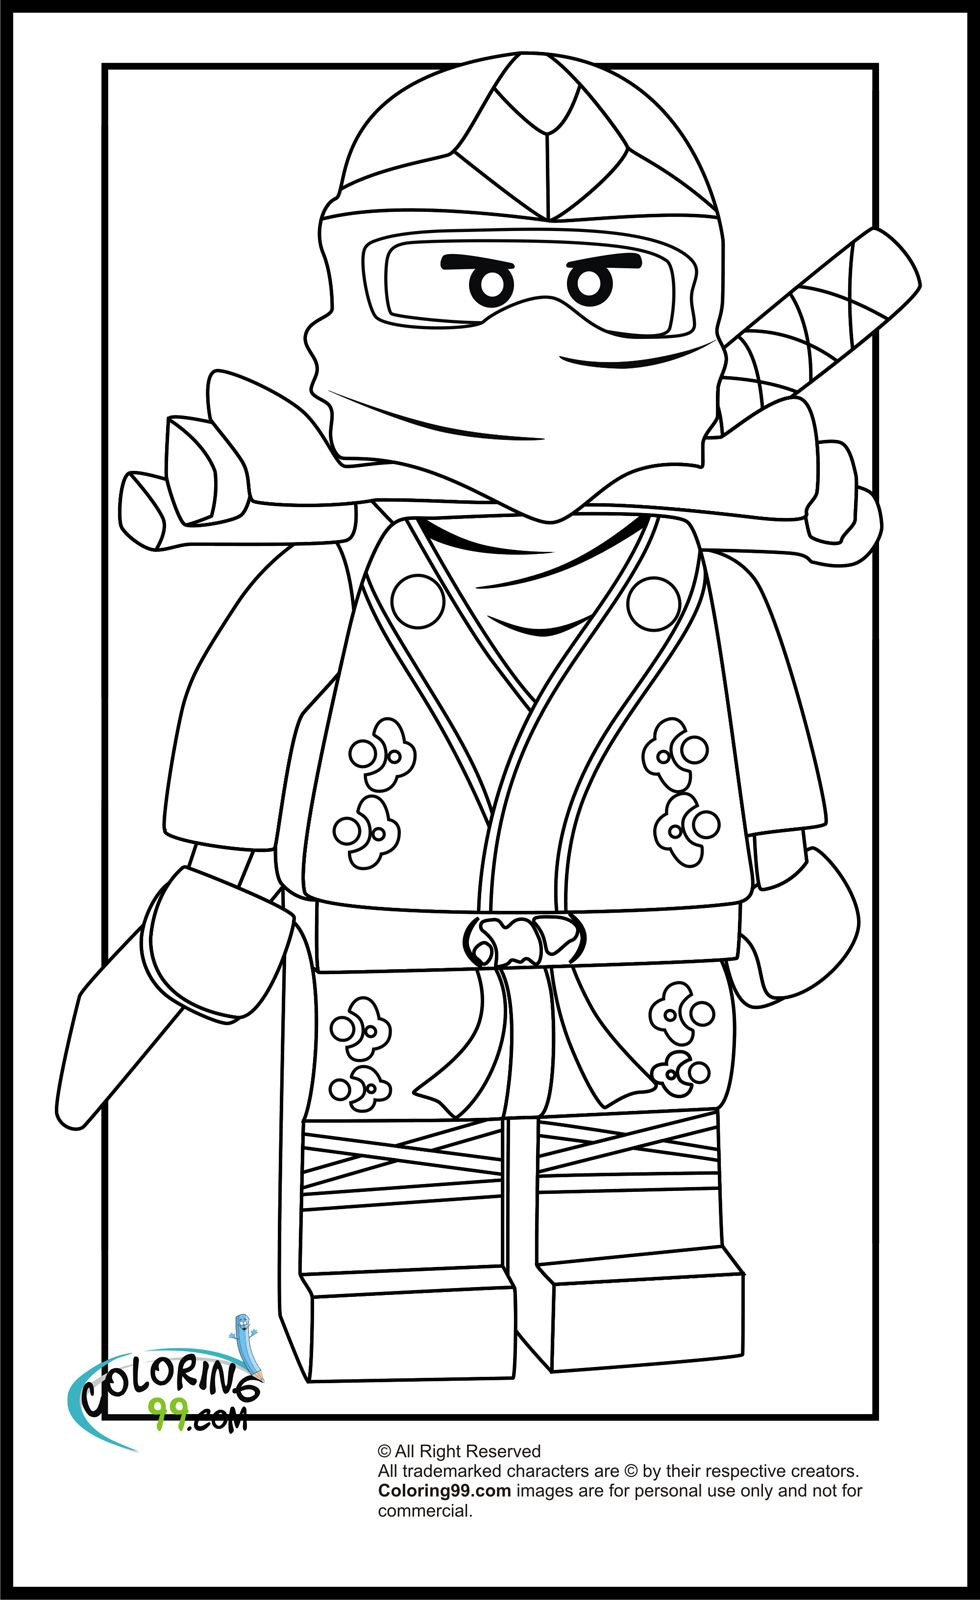 Game online coloring lego - Lloyd Who Is Also Known As The Green Ninja Can Be Said To Be Another Character In Lego Ninjago Collection That Arrest My Mind Quite Well